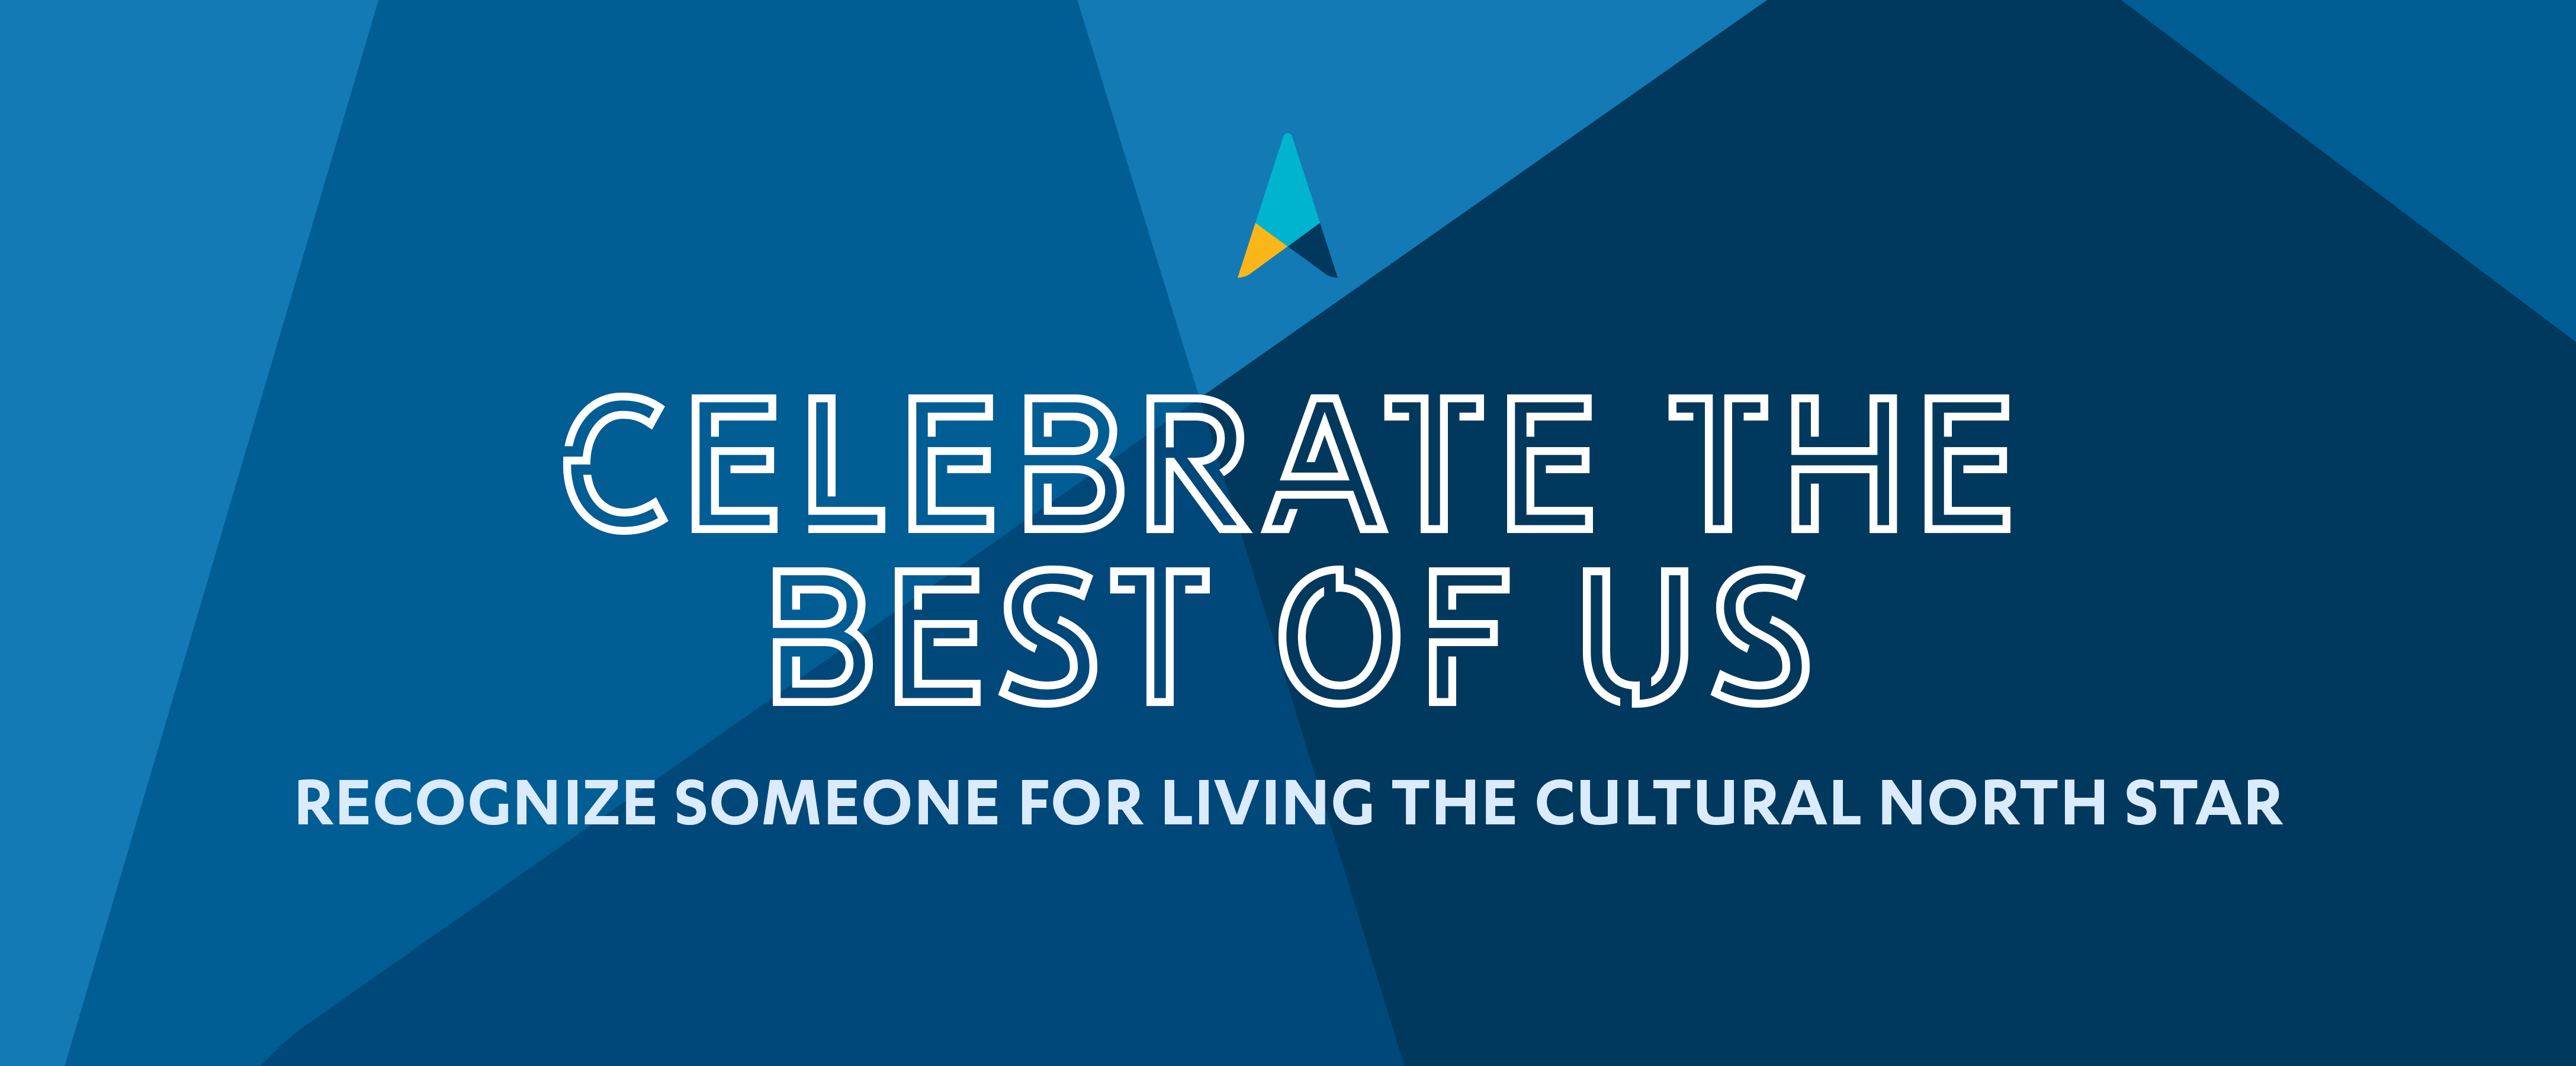 Every positive action, big or small, helps us build a stronger, more cohesive culture. Take a moment to recognize someone at DGSOM for embodying one or more of our Cultural North Star values.